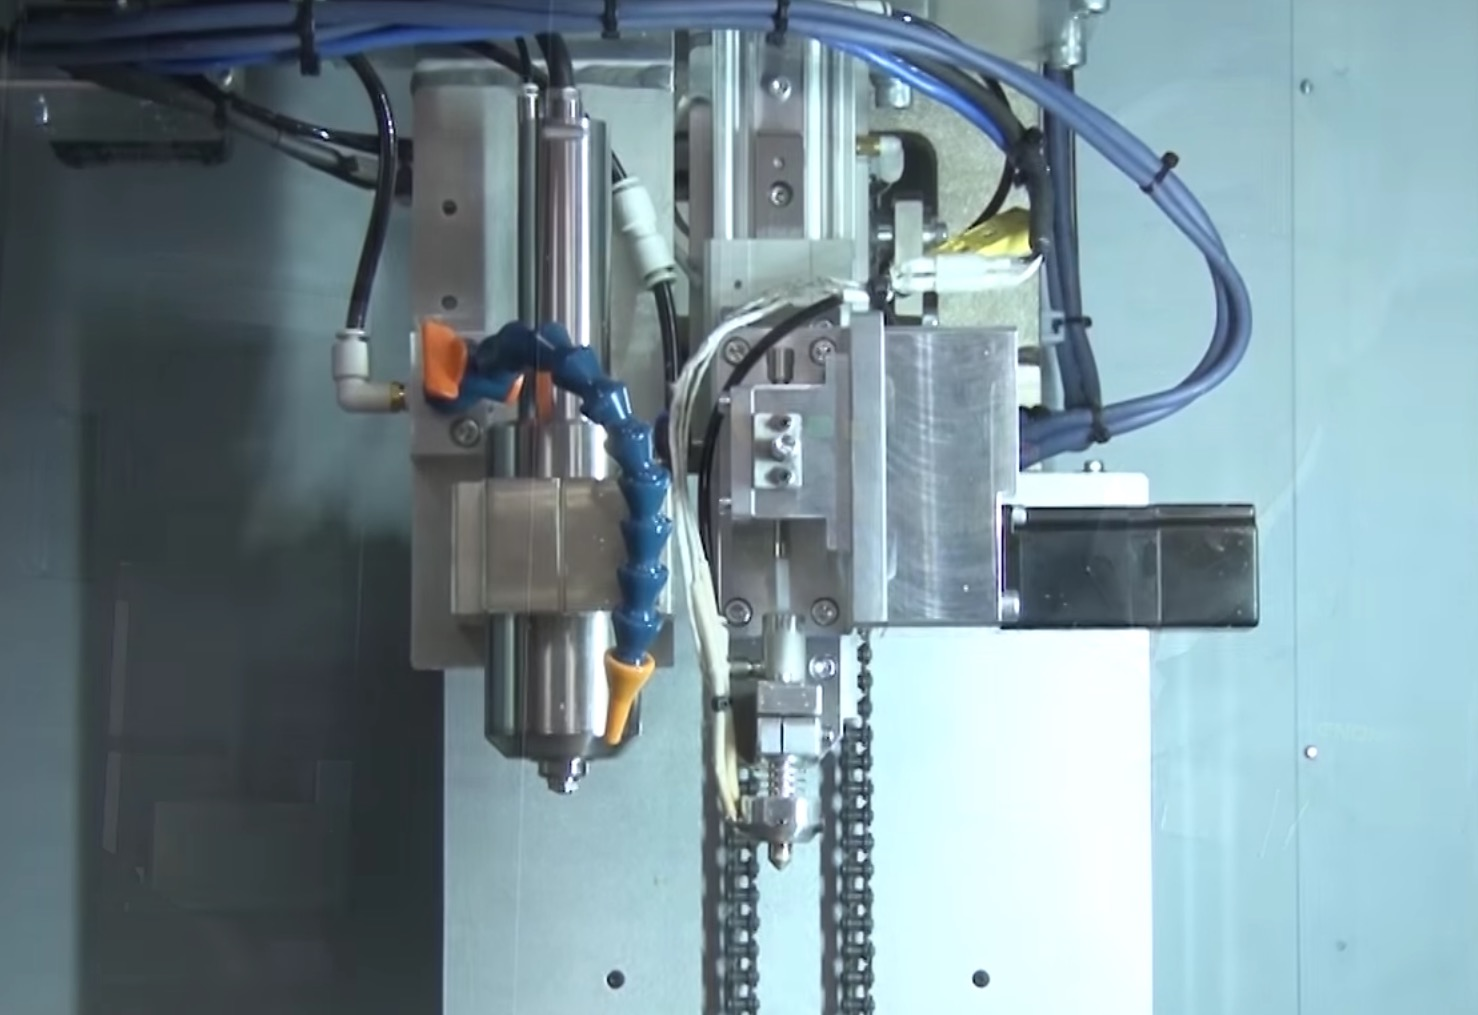 ENOMOTO's hybrid industrial CNC mill and 3D printhead